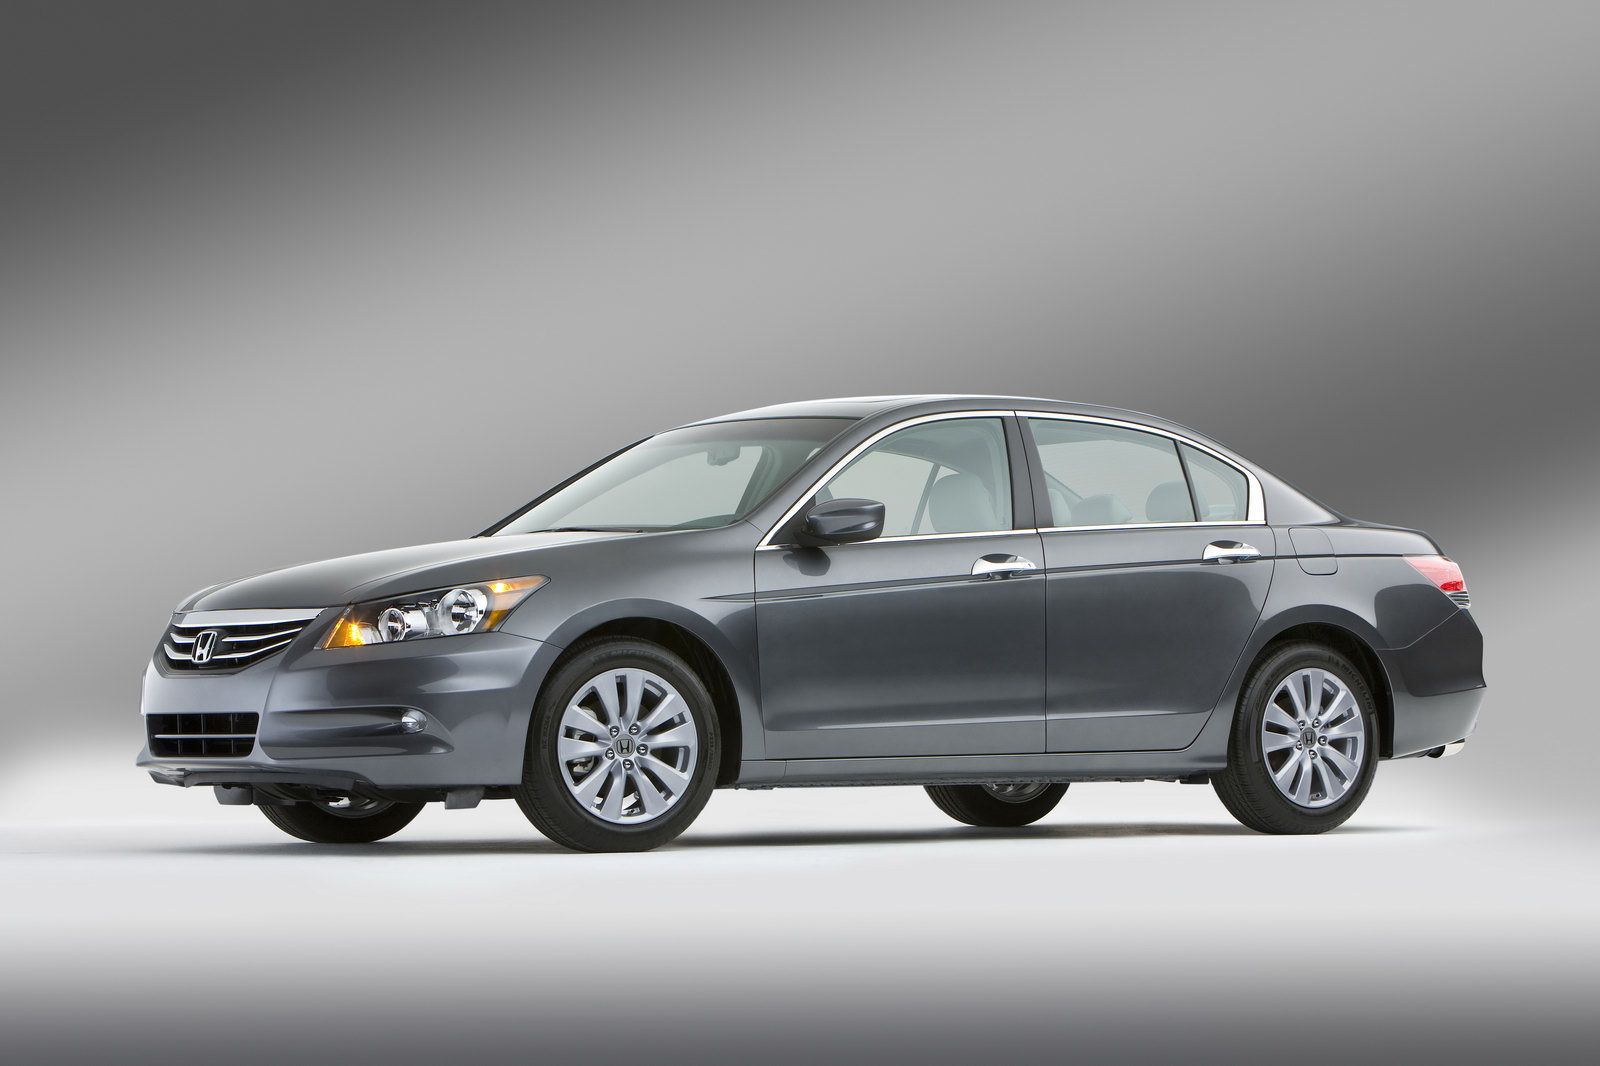 Honda Accord 2011 Sedan Cars Wallpapers And Pictures Car